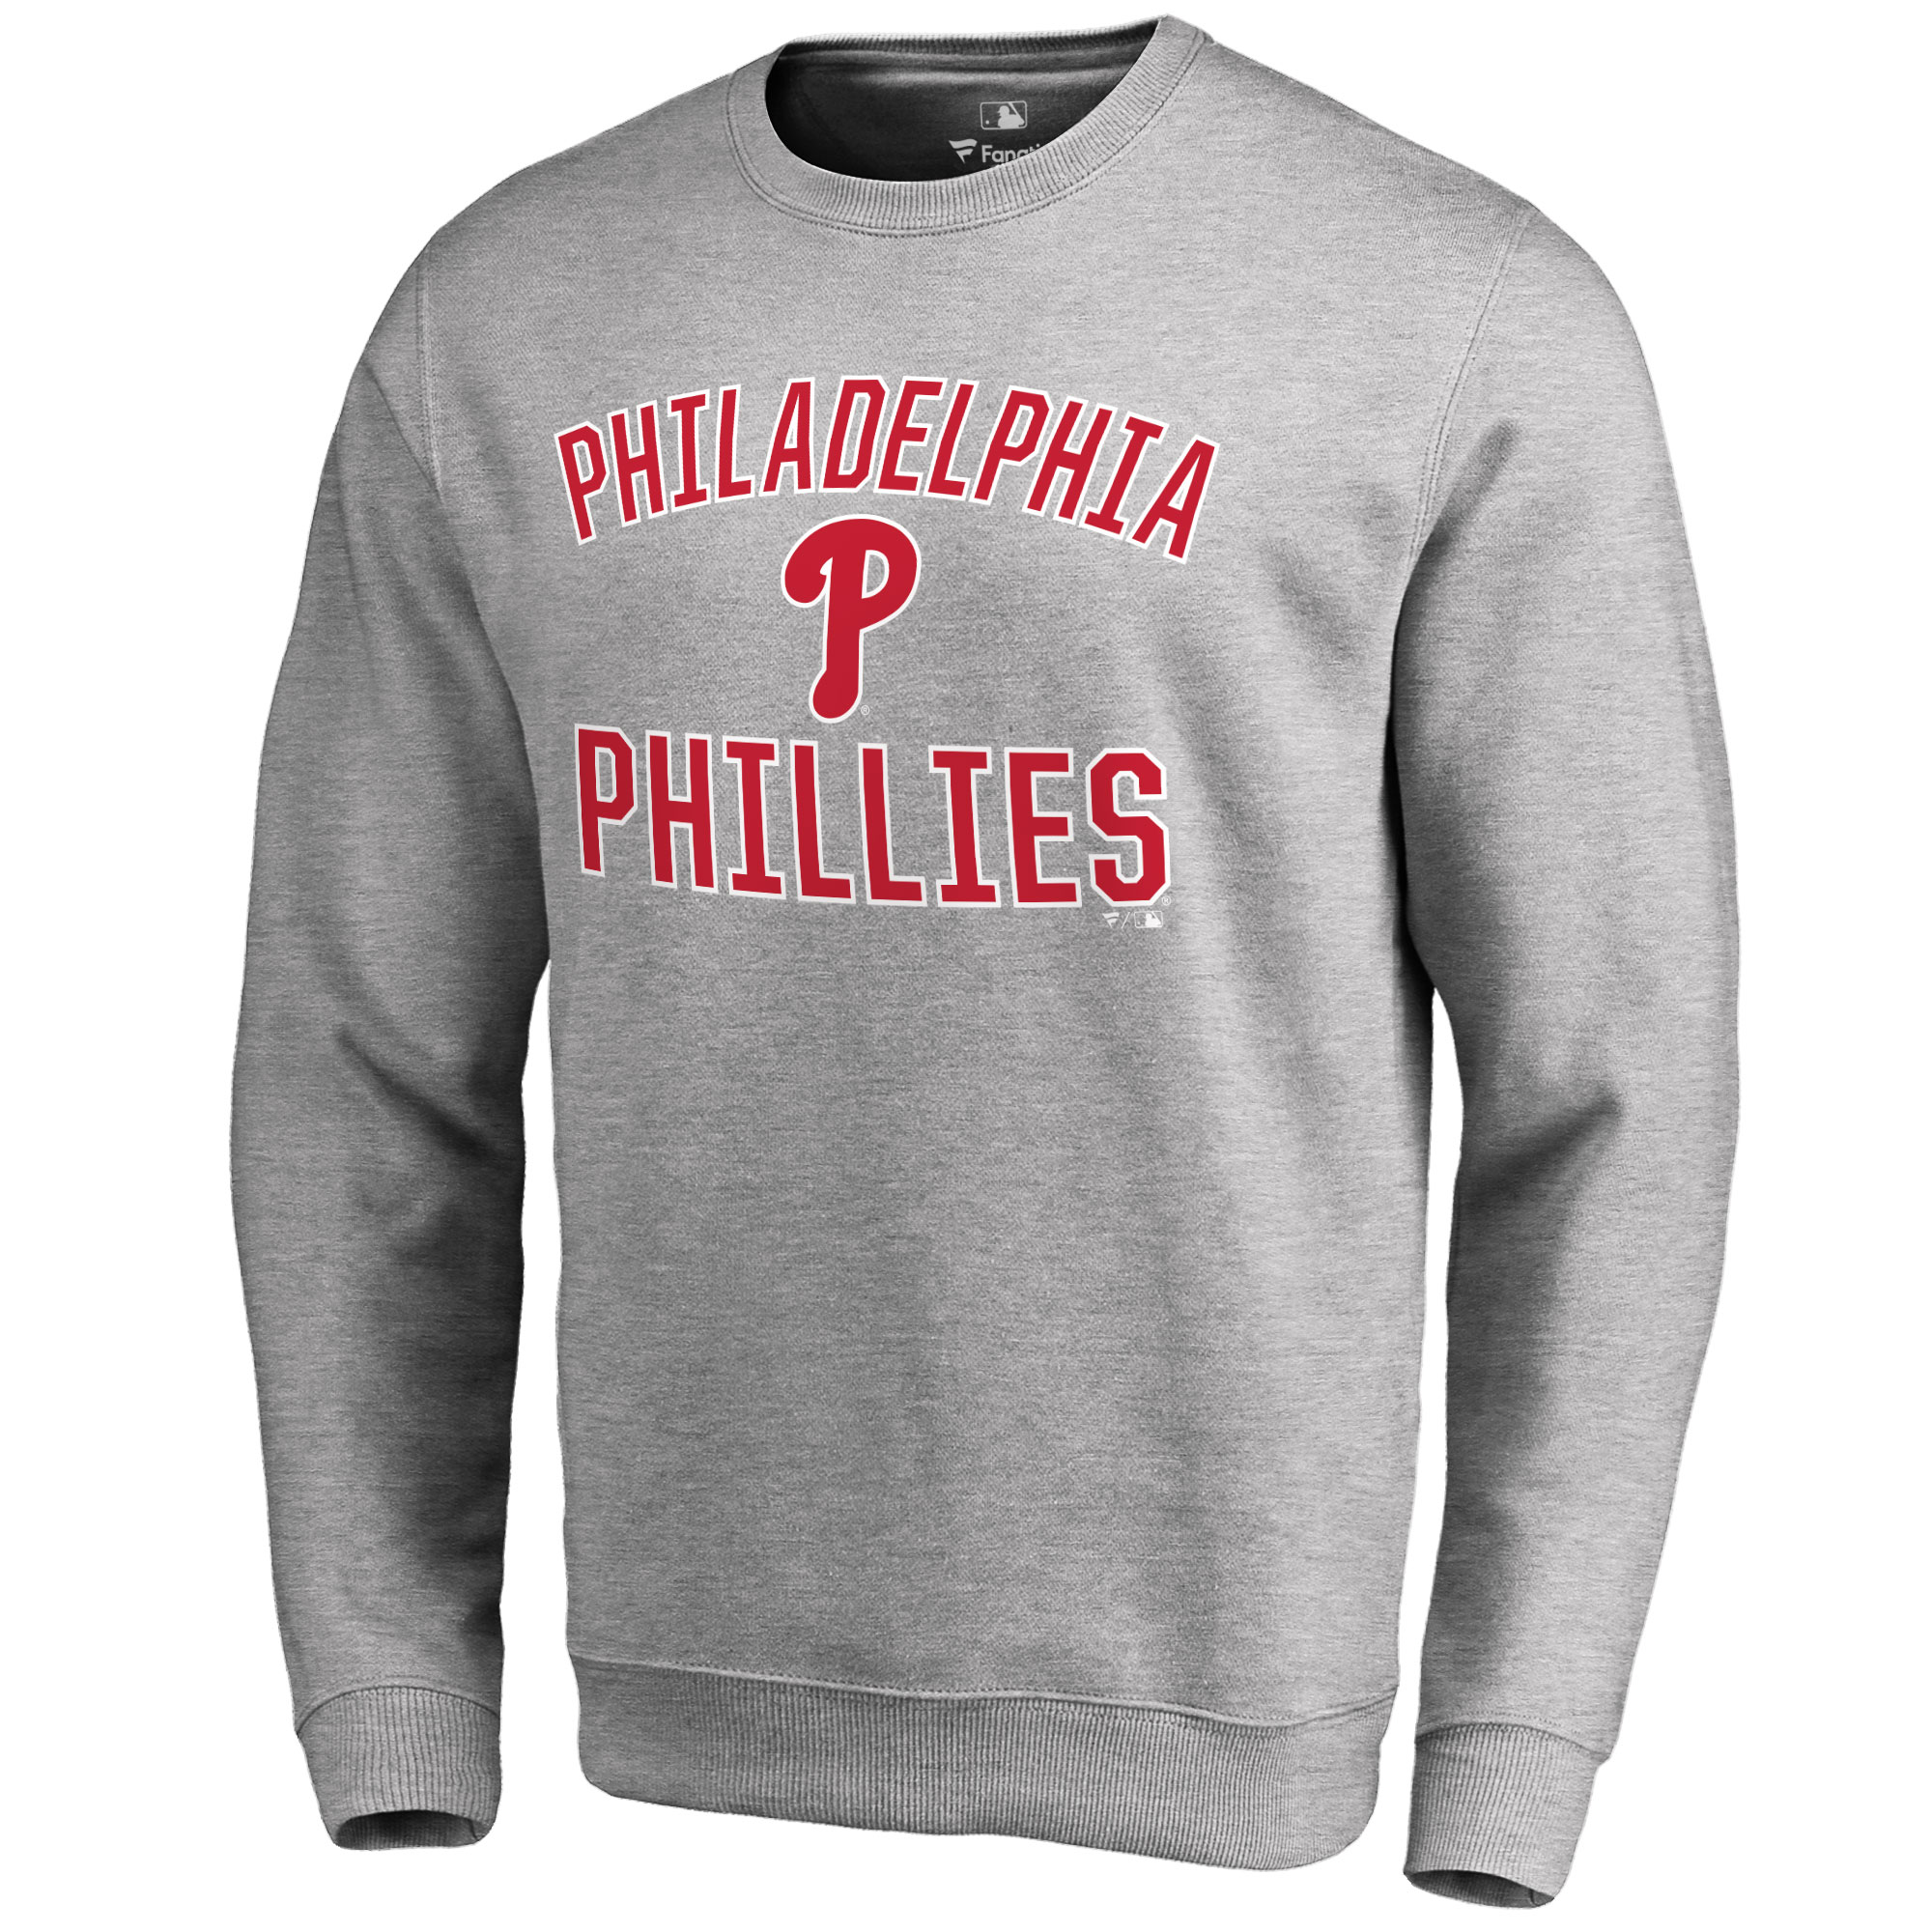 Philadelphia Phillies Victory Arch Pullover Sweatshirt - Ash